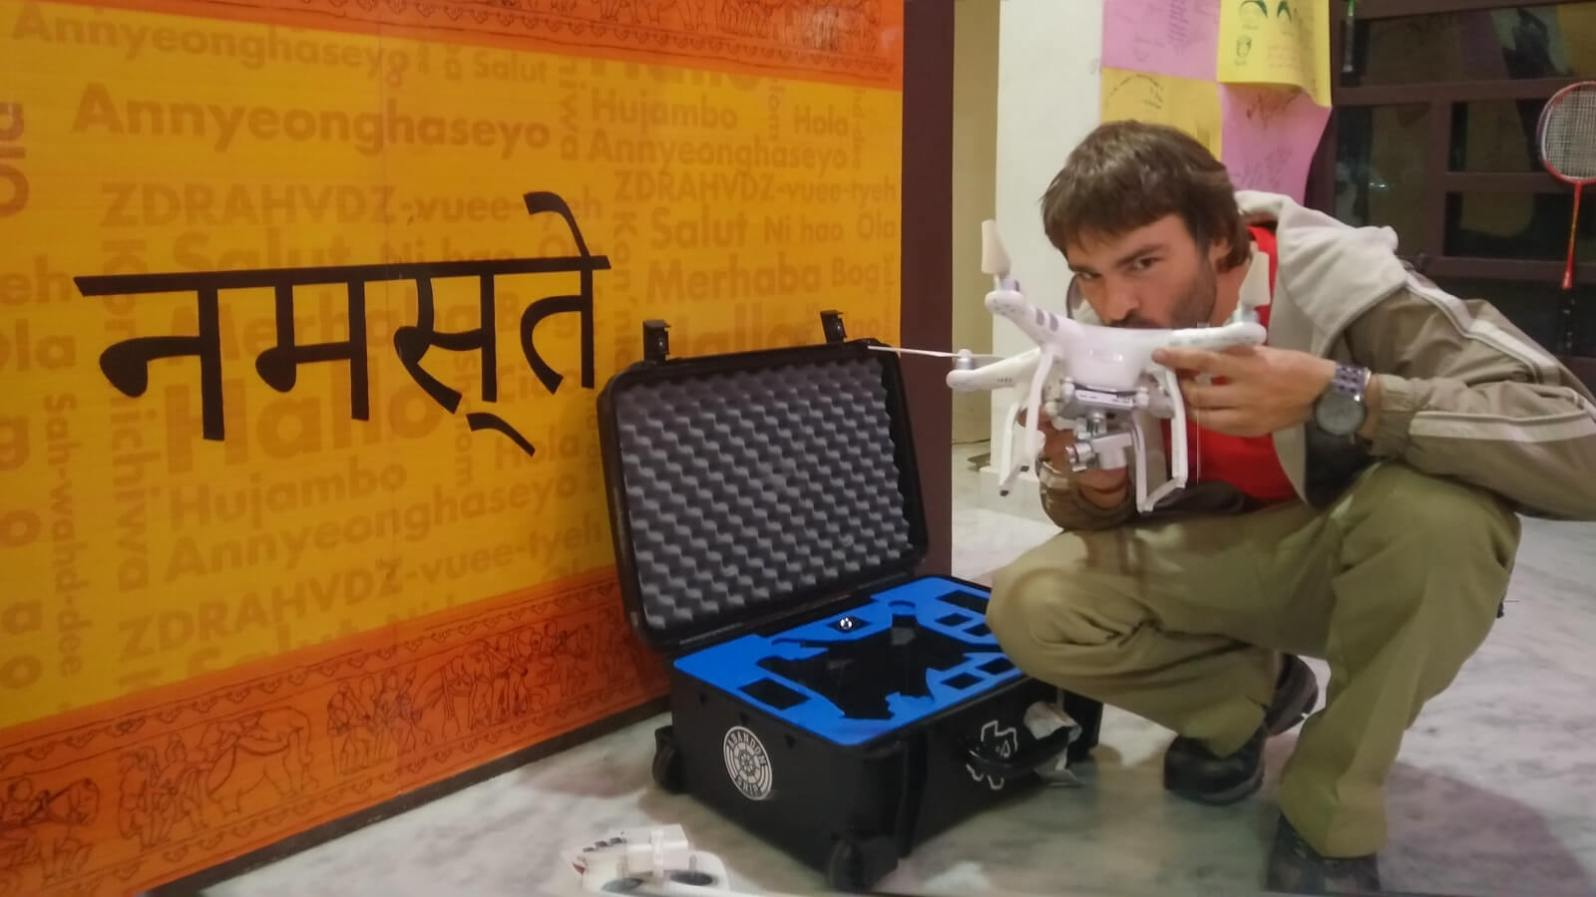 Derek gets reunited with his drone after being arrested in Khajuraho for filming the temples